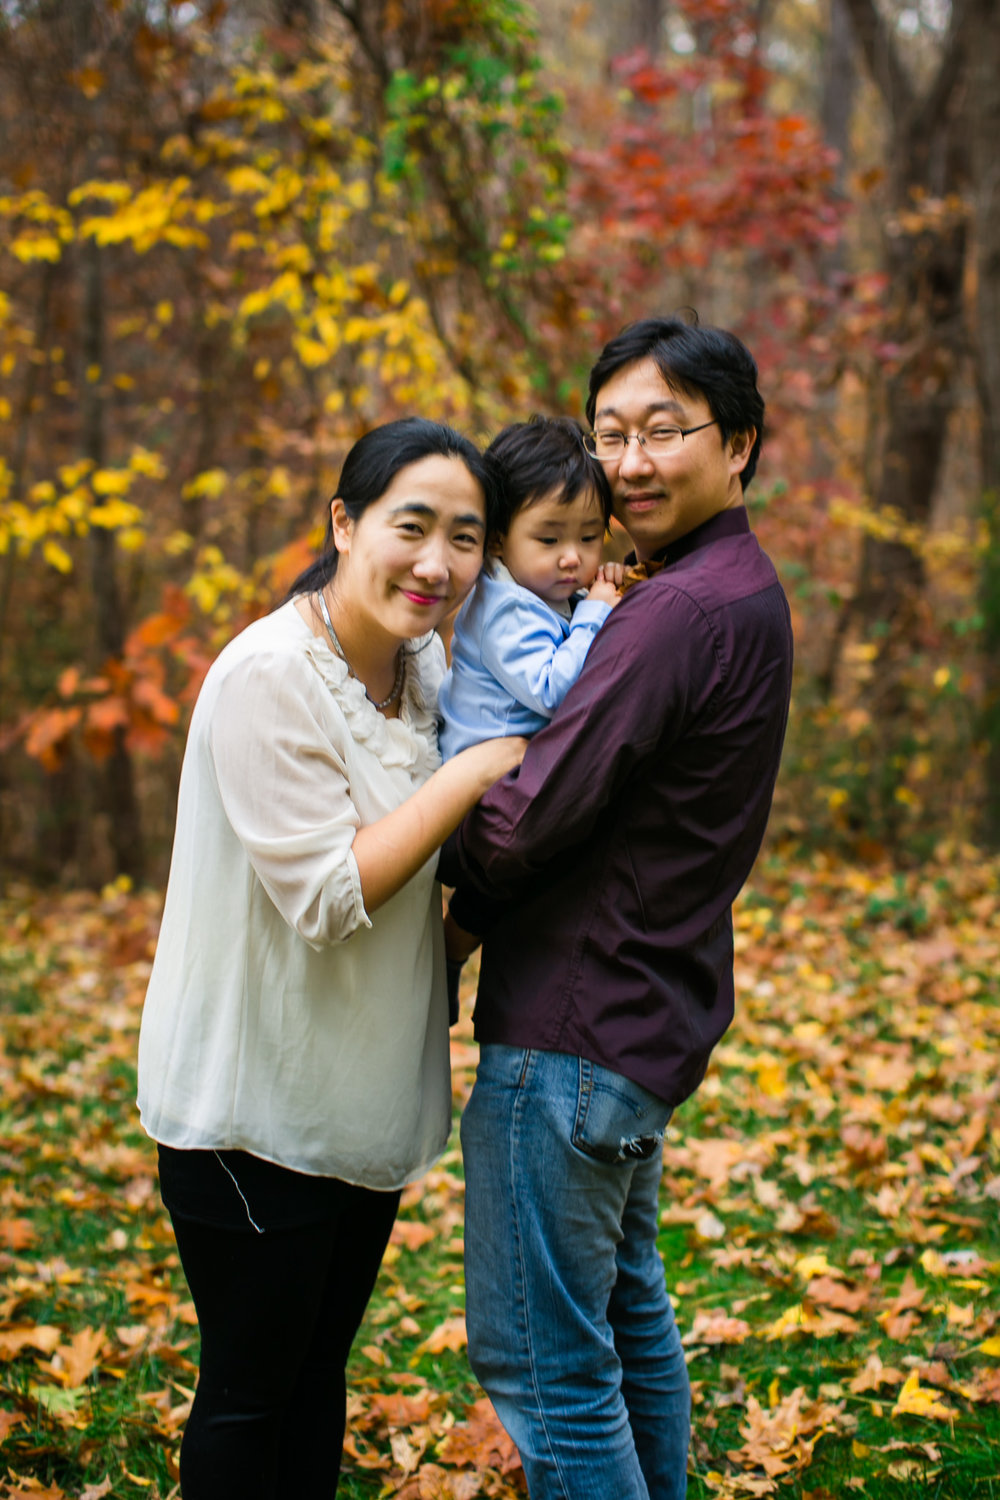 Durham_Family_Photographer_Yoo-92.jpg